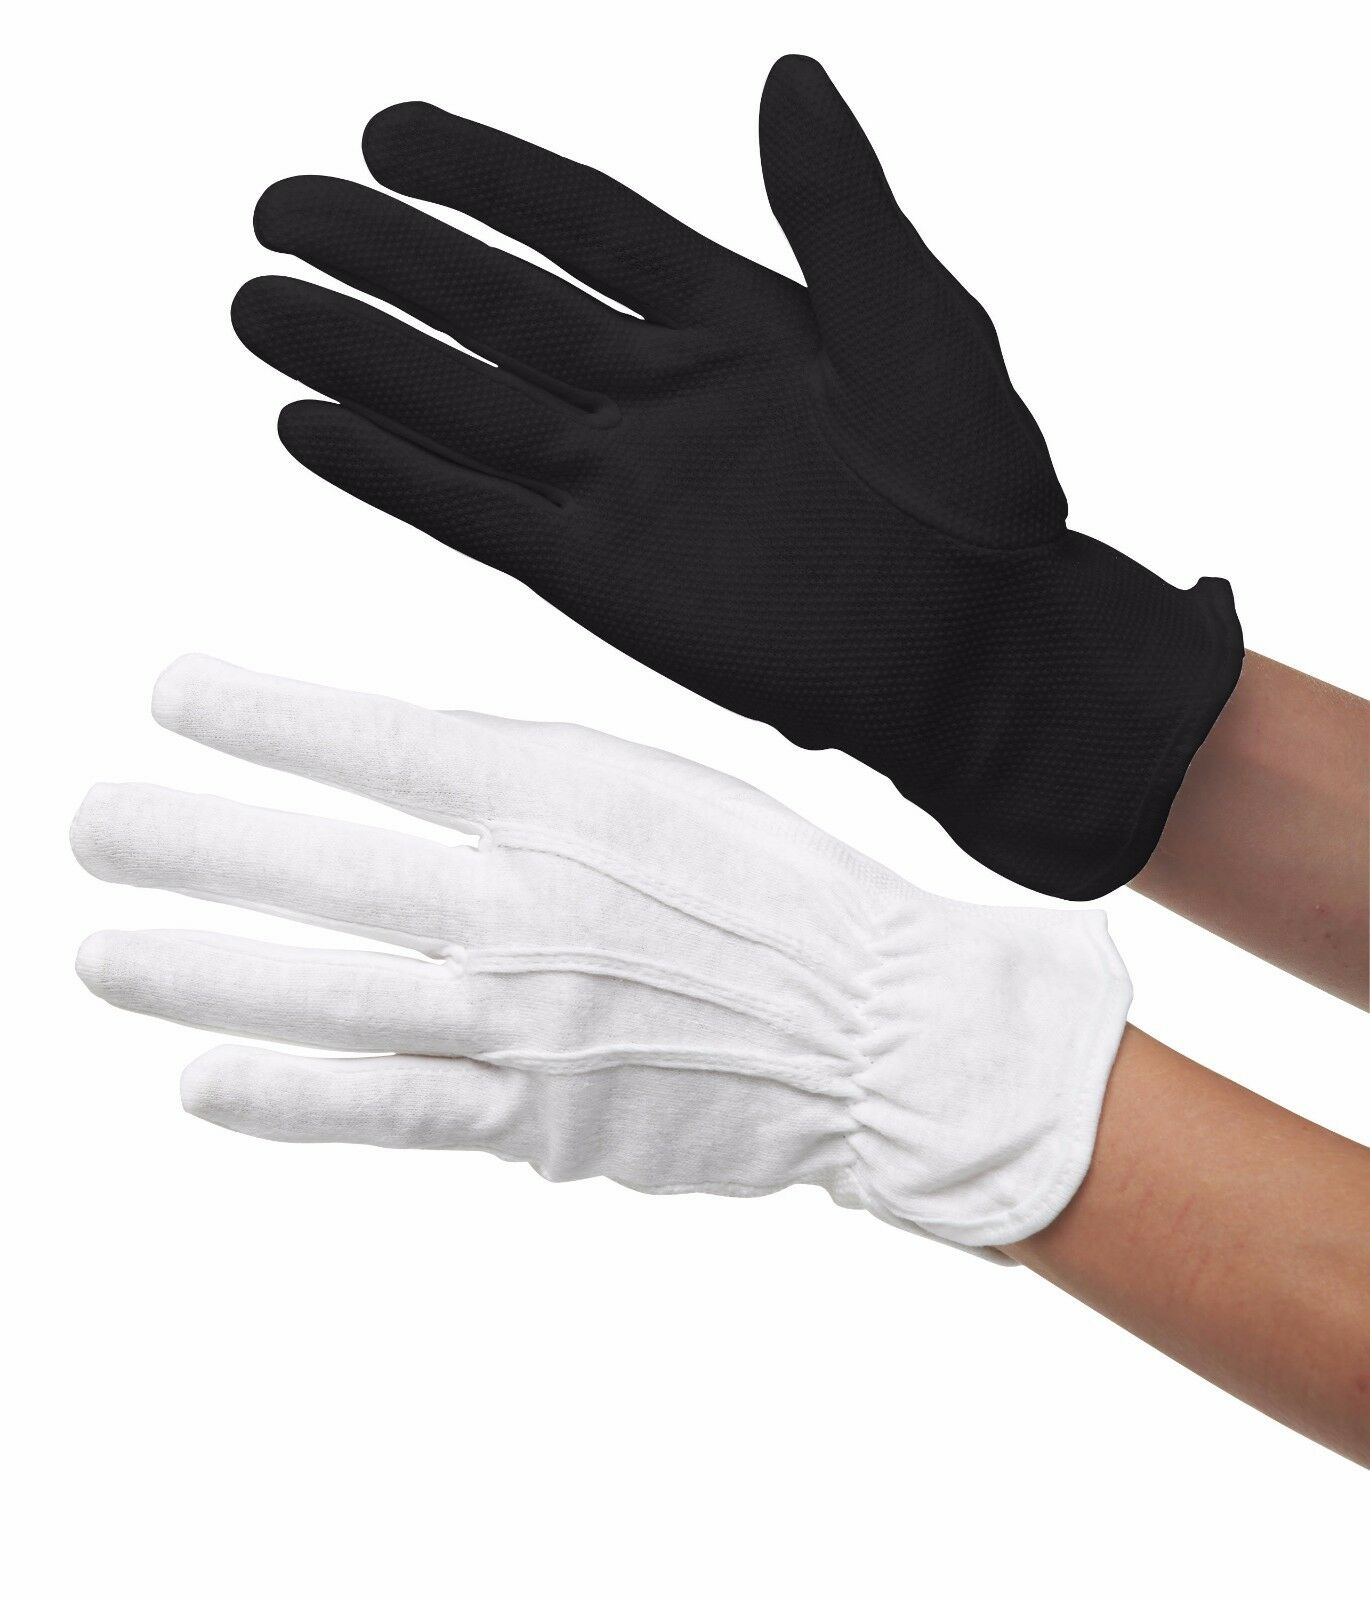 heat resistant gloves for hair styling uk heat resistant gloves white new large hair styling or 4033